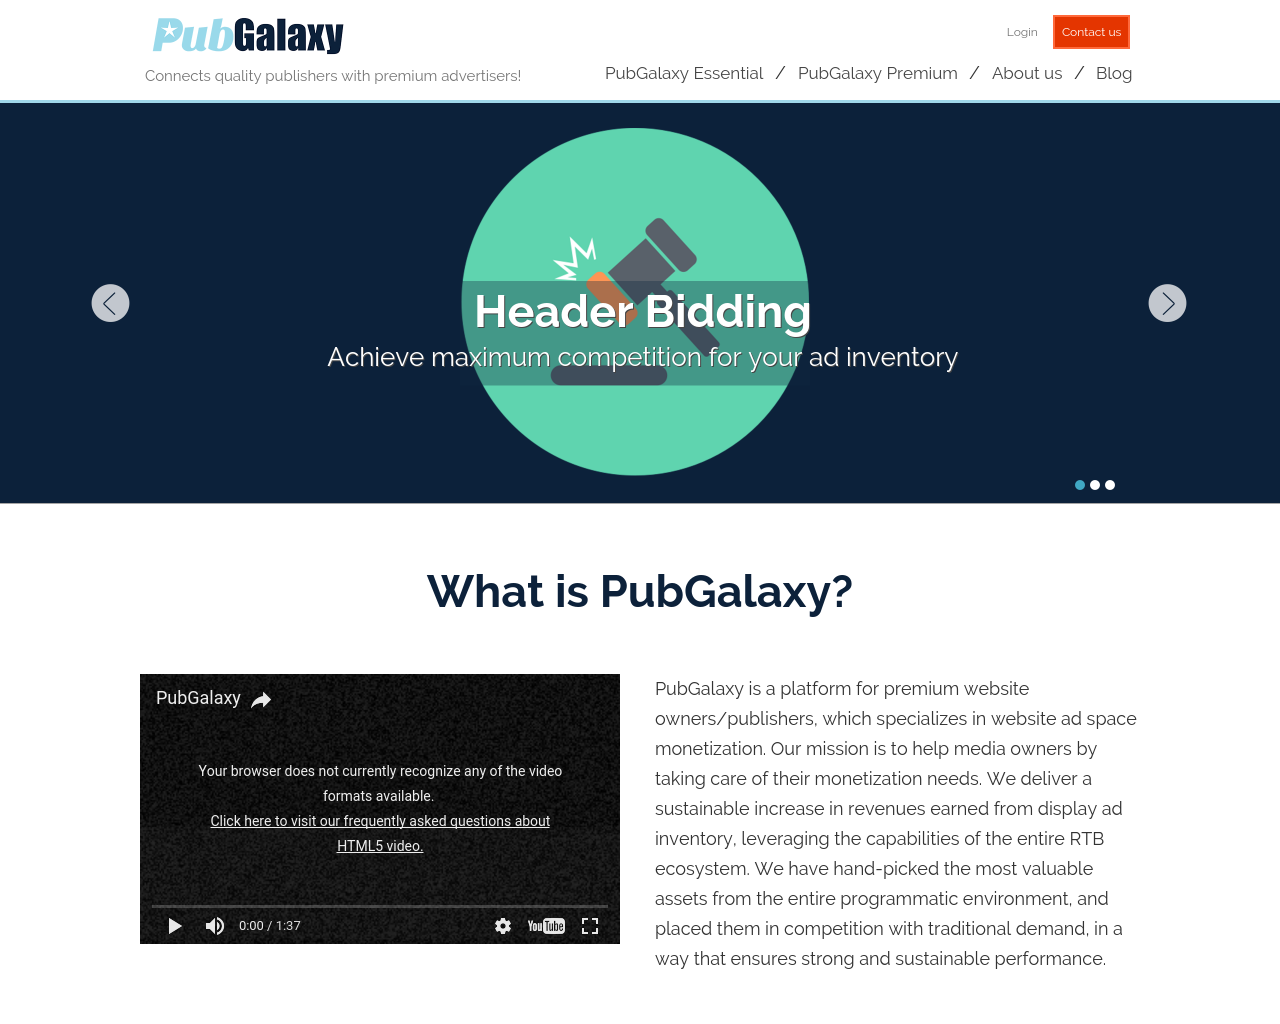 PubGalaxy-Advertising-Reviews-Pricing